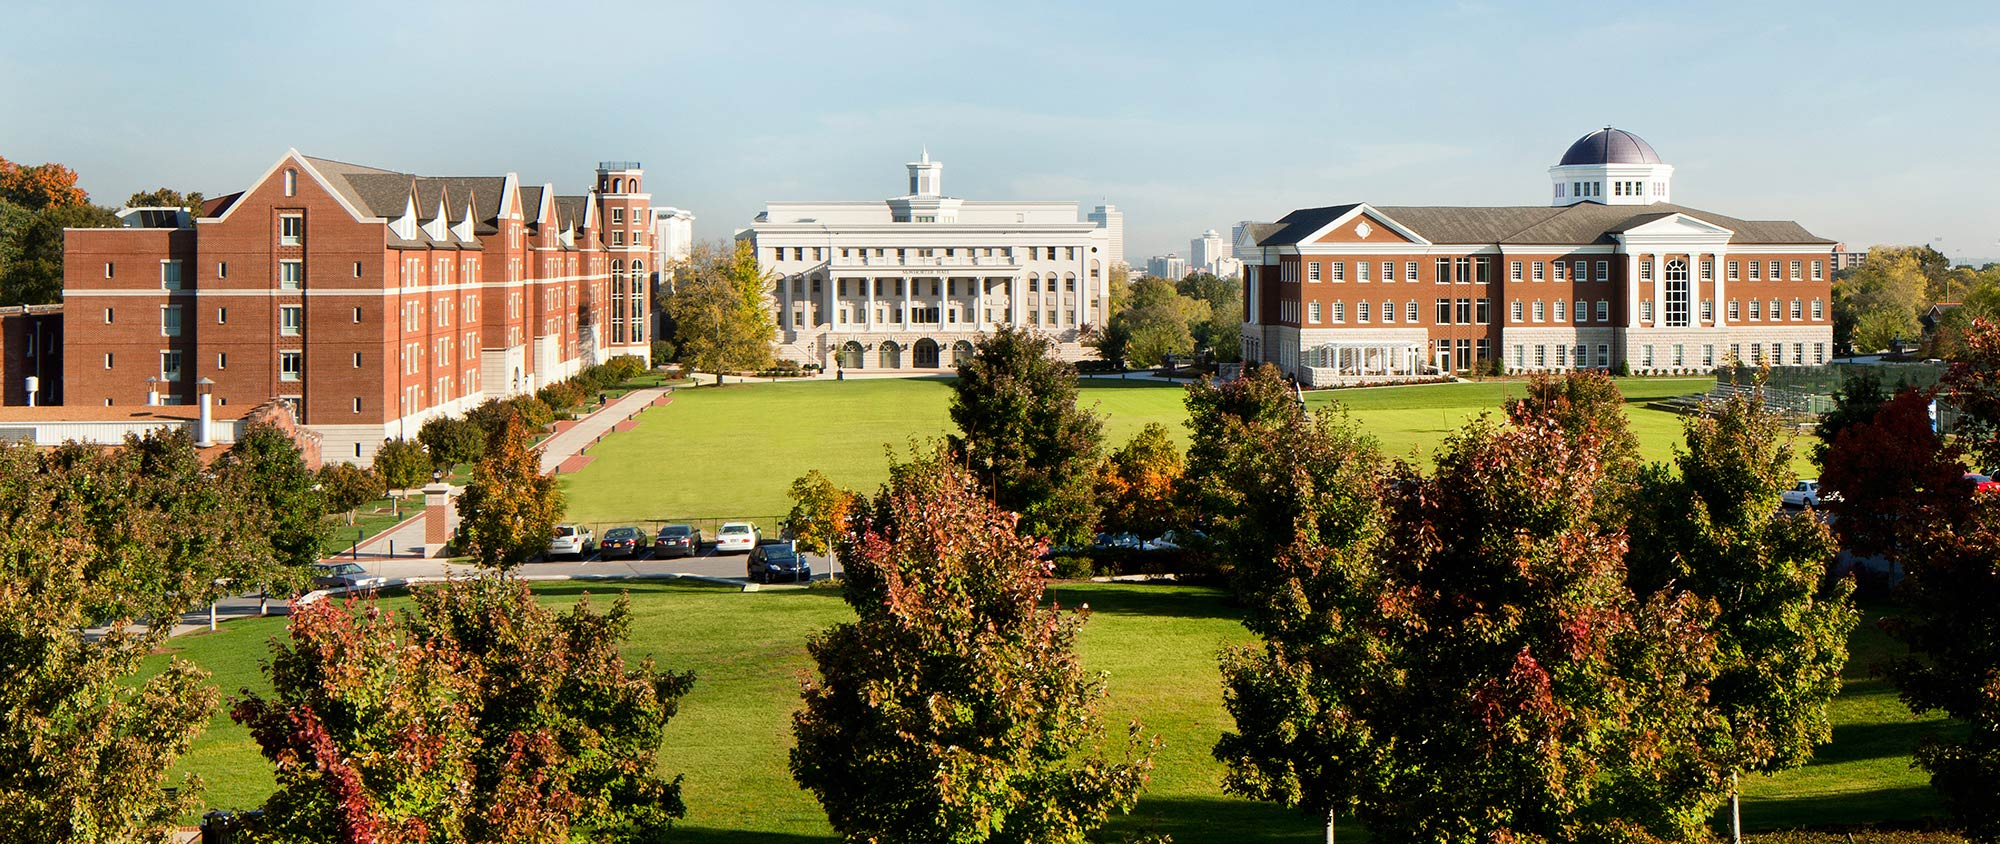 Belmont University Randall and Sadie Baskin Center-College of Law